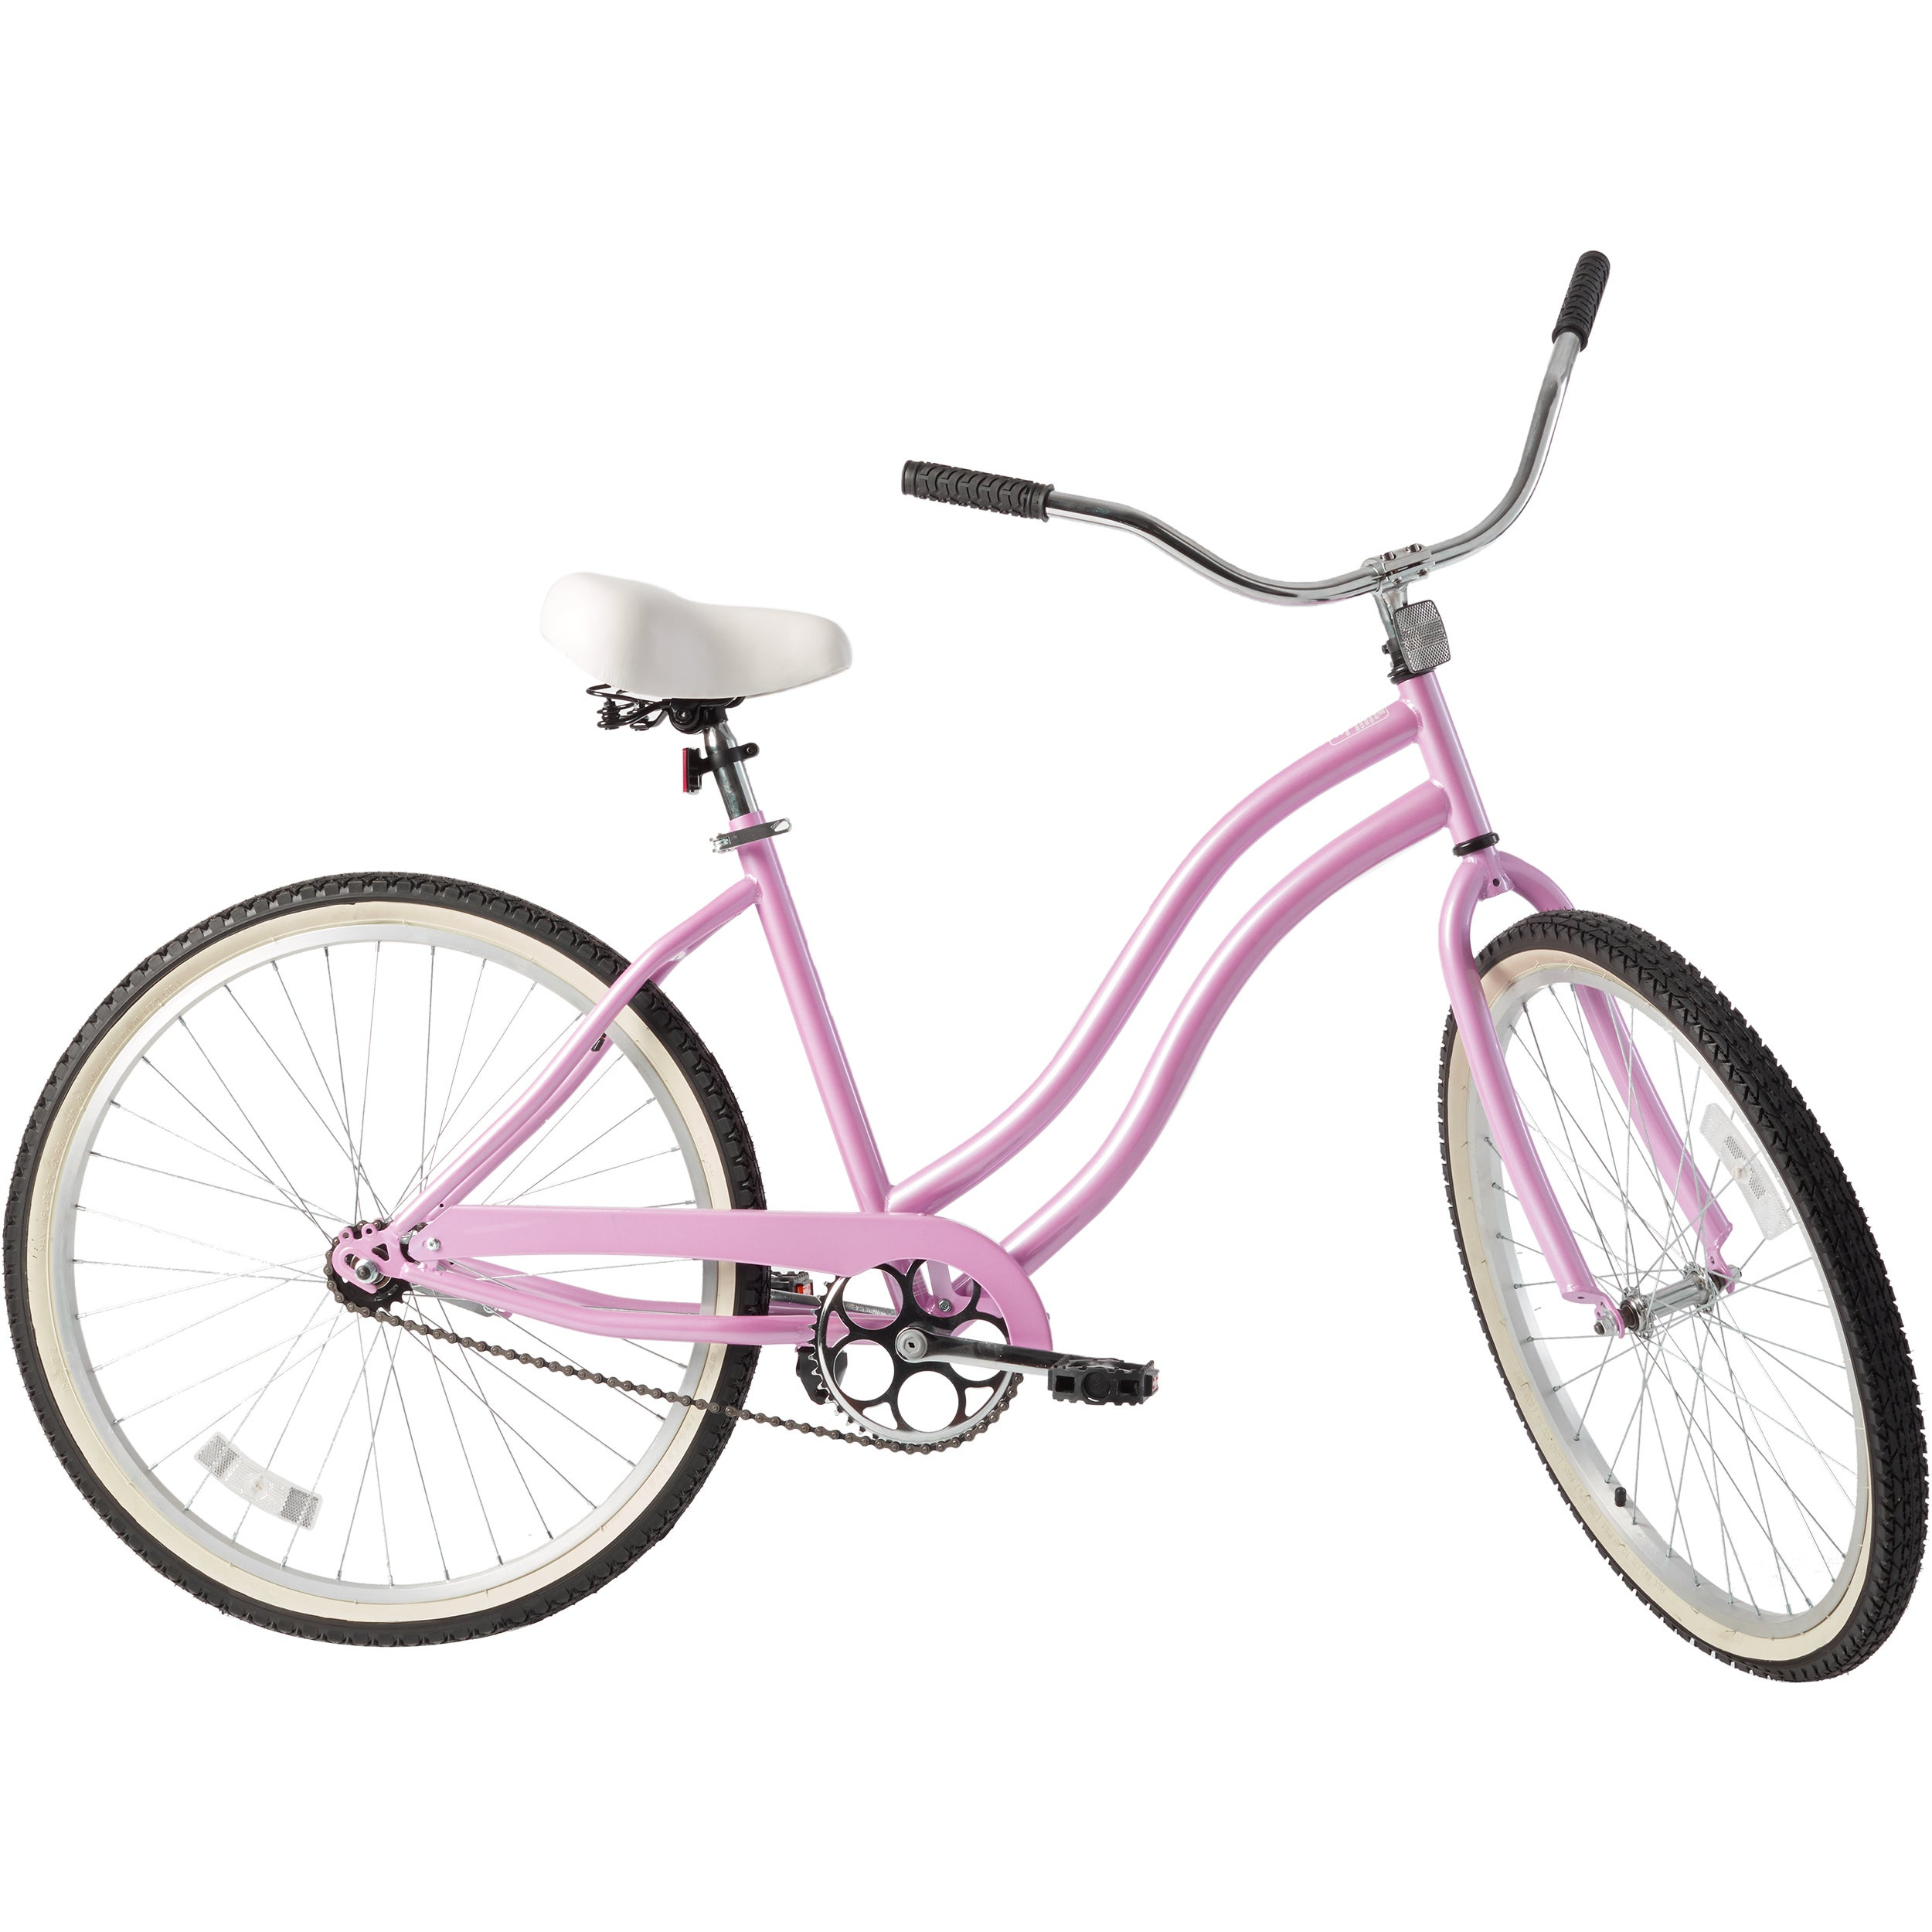 Cycle Force 26-inch Ladies Cruiser Bike (Pink), Size 18-inch